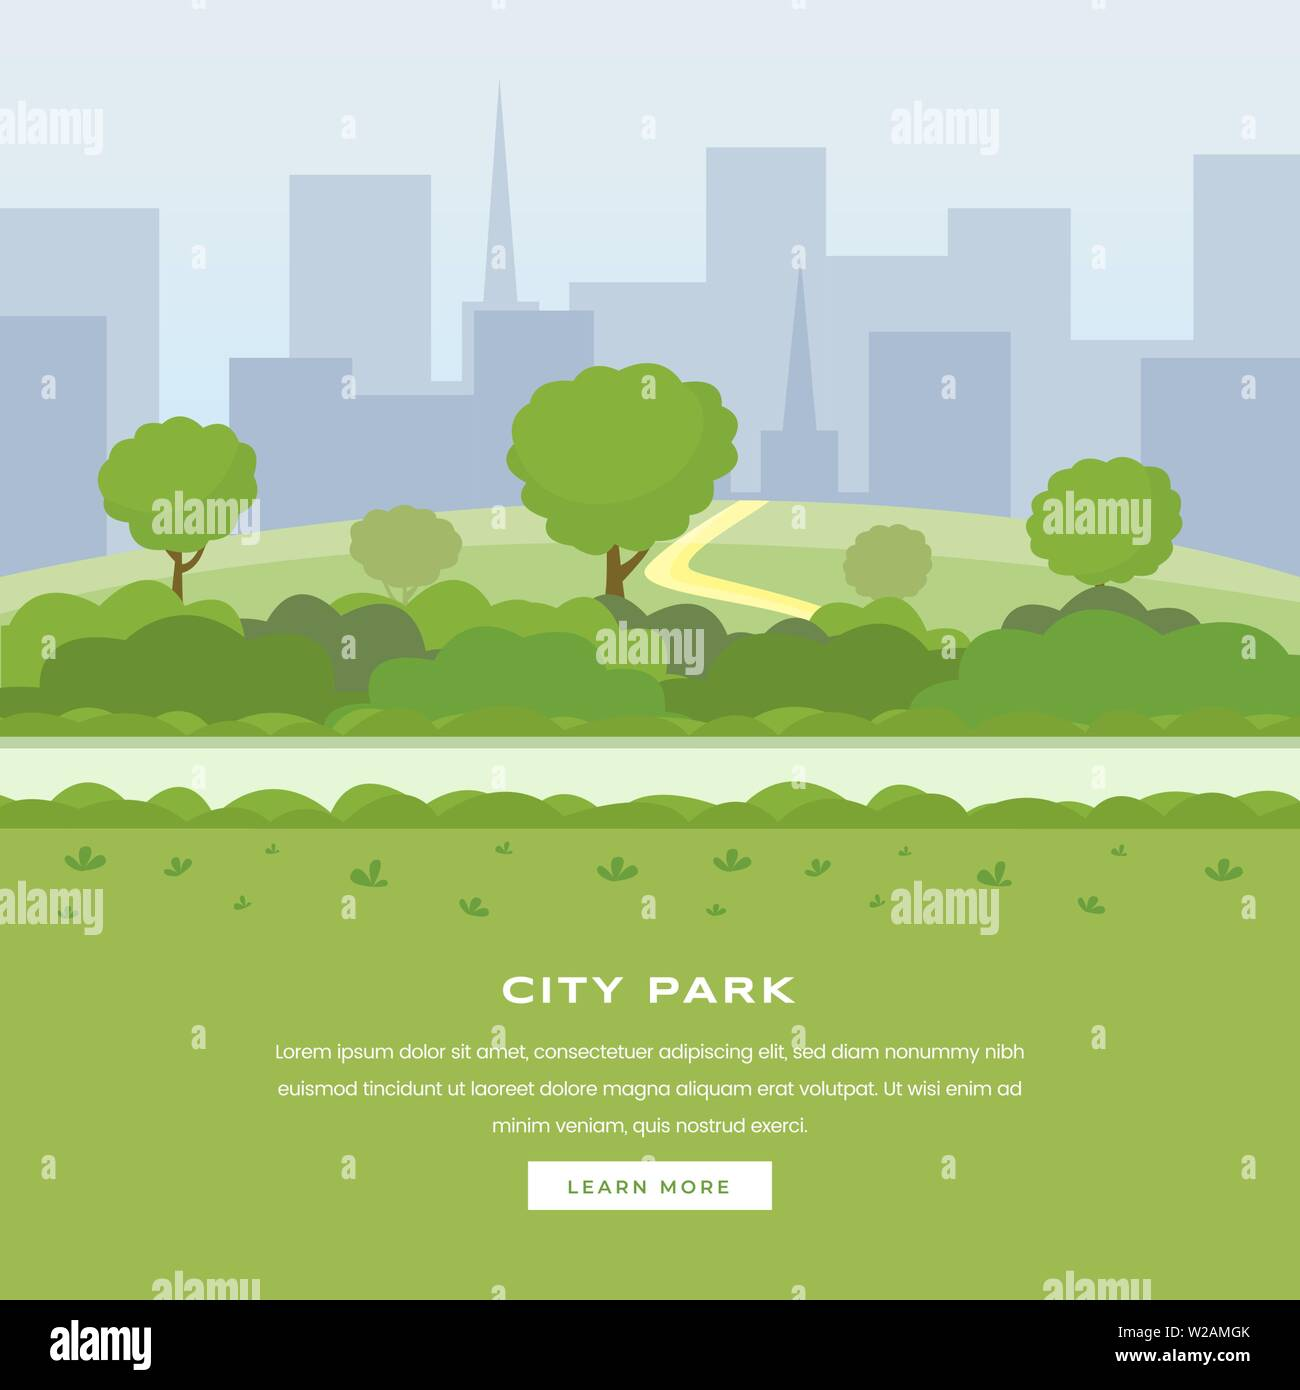 Modern city park vector landing page. Green trees and bushes walkway, skyscrapers cityspace, outdoor leisure on nature public area. Recreational urban park, botanical garden website homepage - Stock Vector